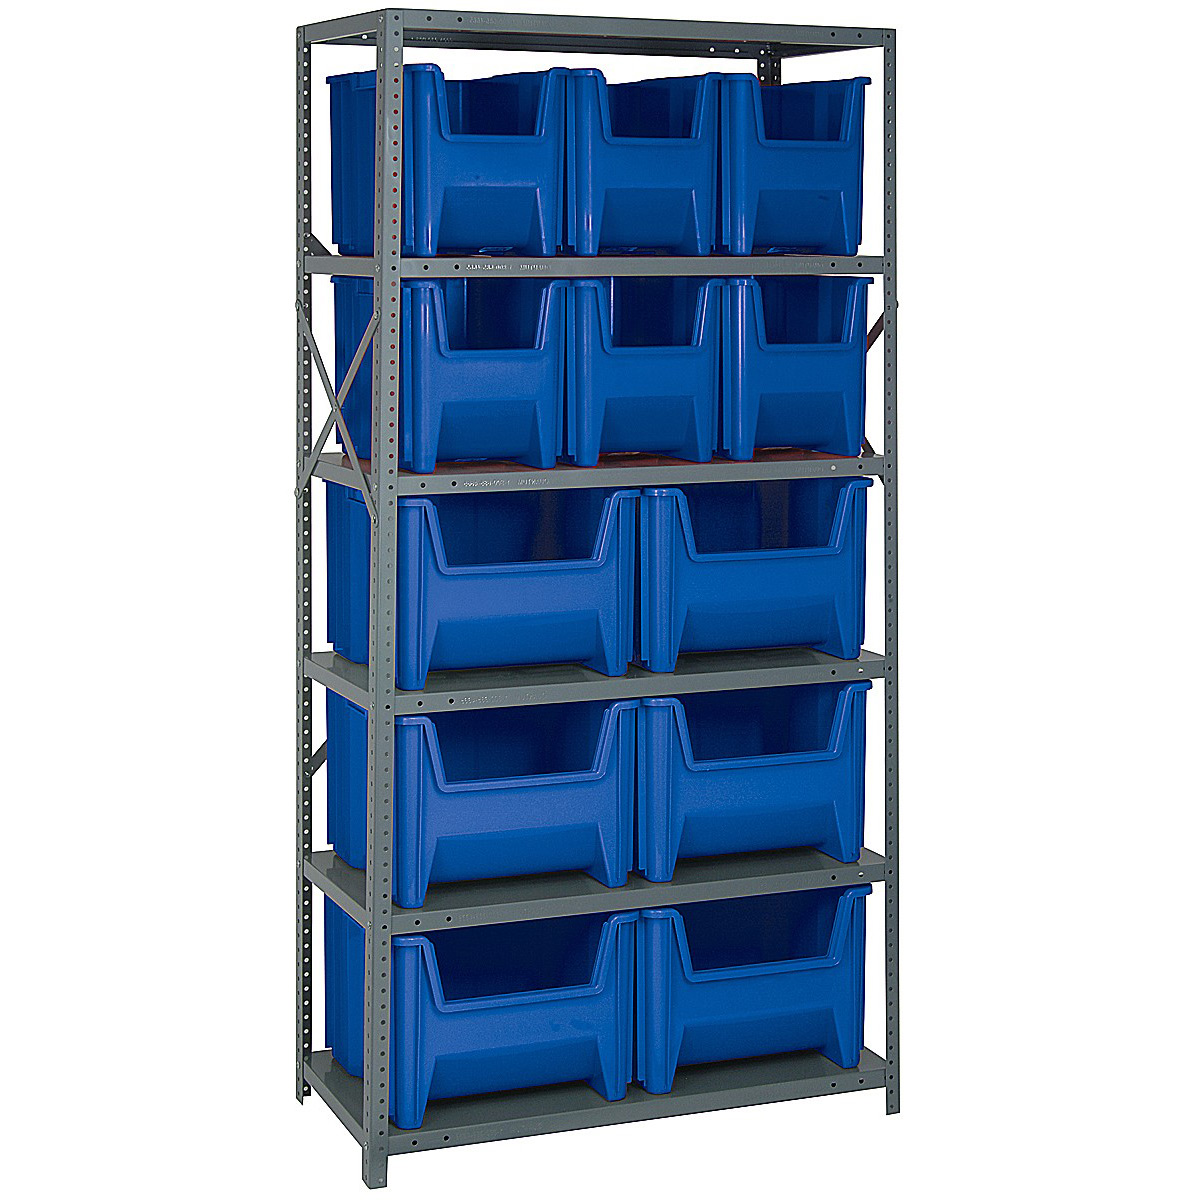 shelves design your cabinet home cheap organization idea tool interior organizer wooden garage storage for overhead